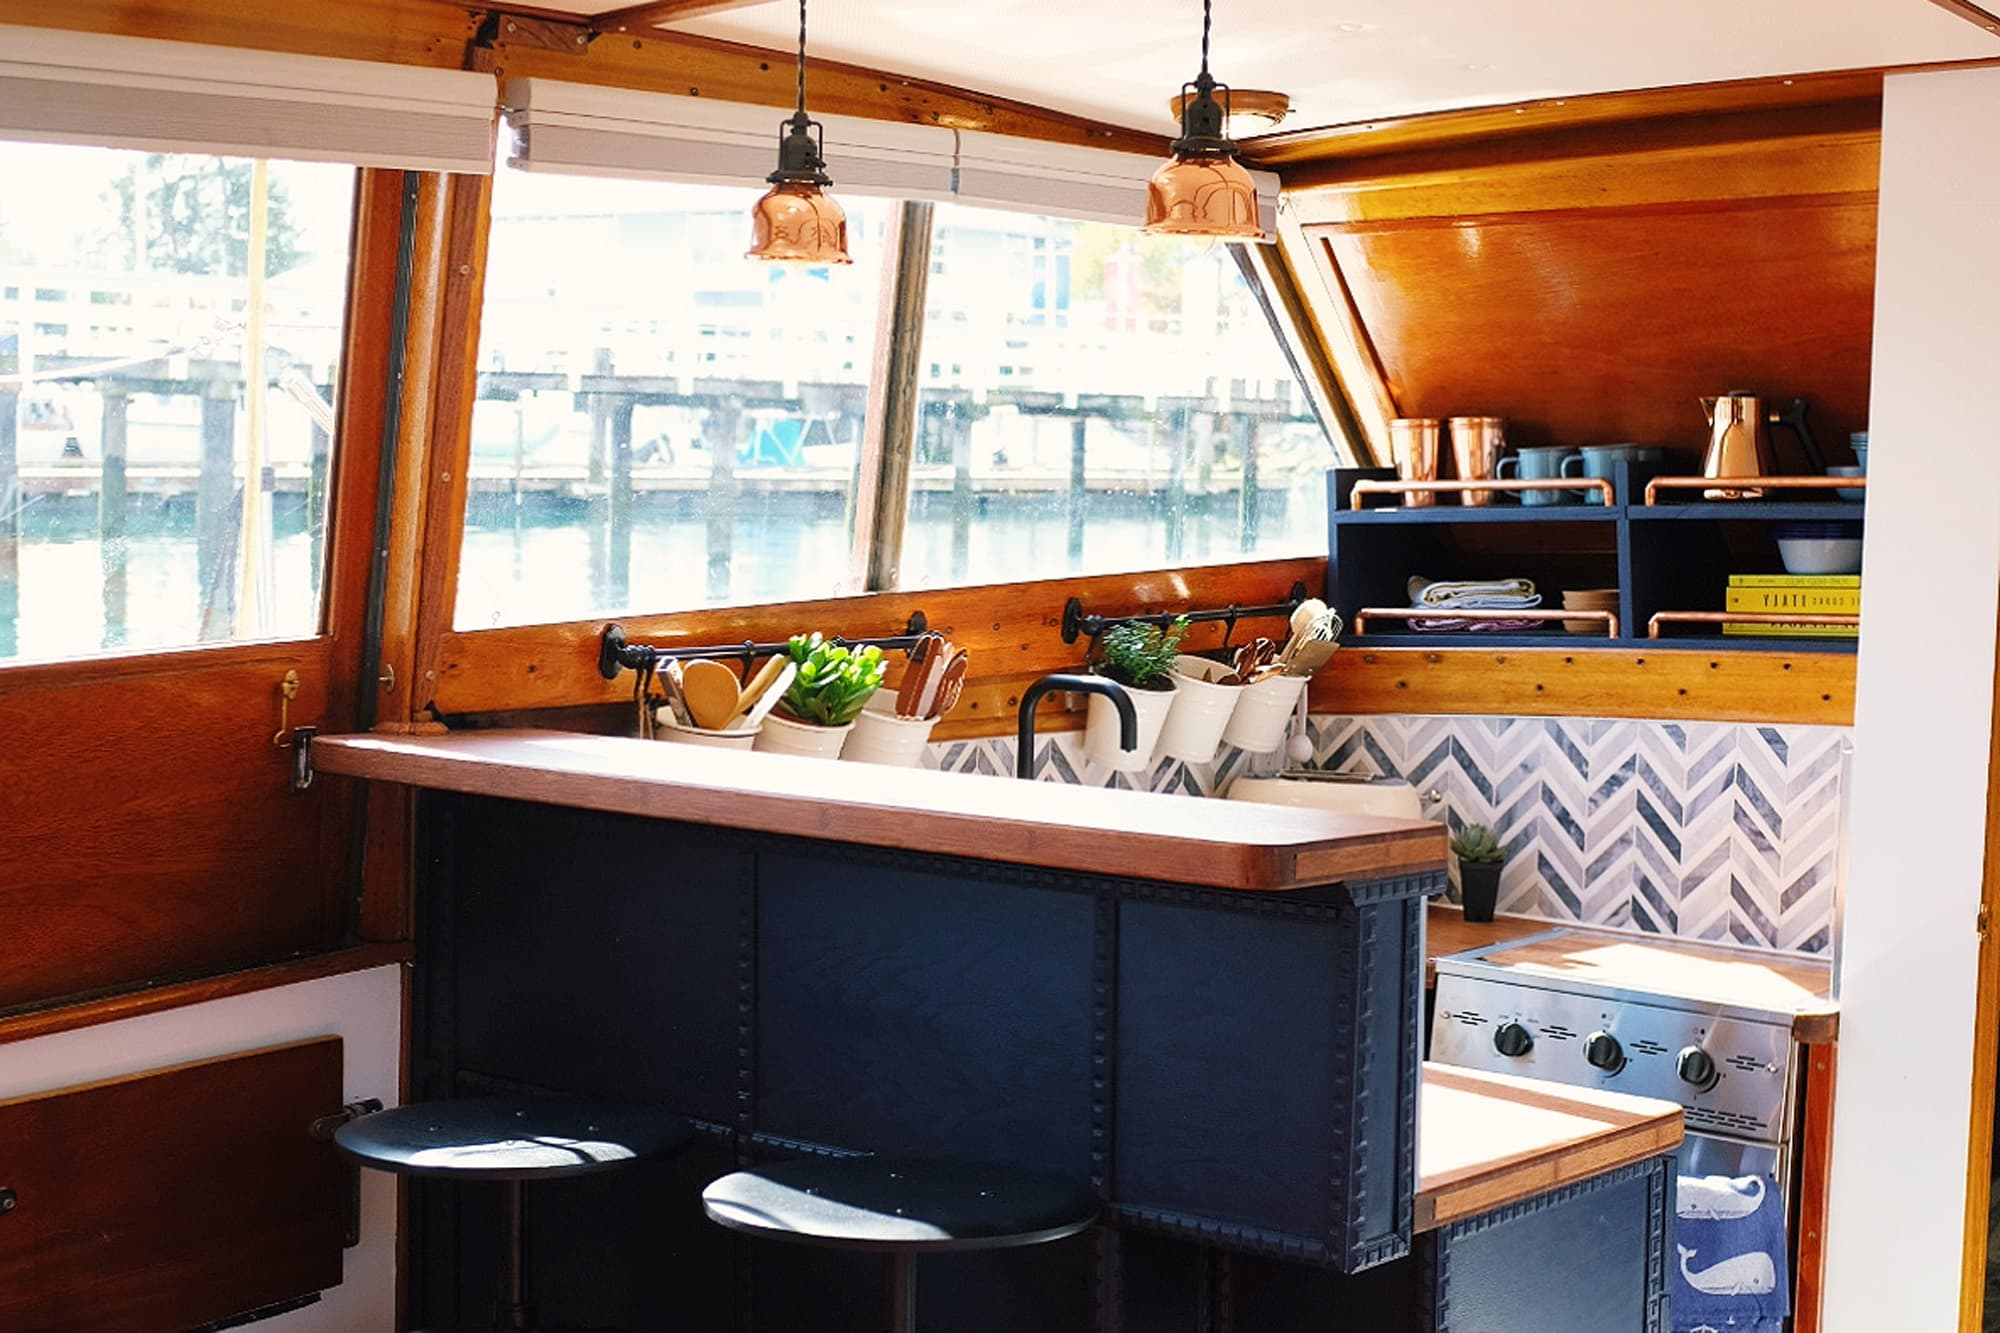 This Houseboat Has One of the Cutest Tiny House Kitchens